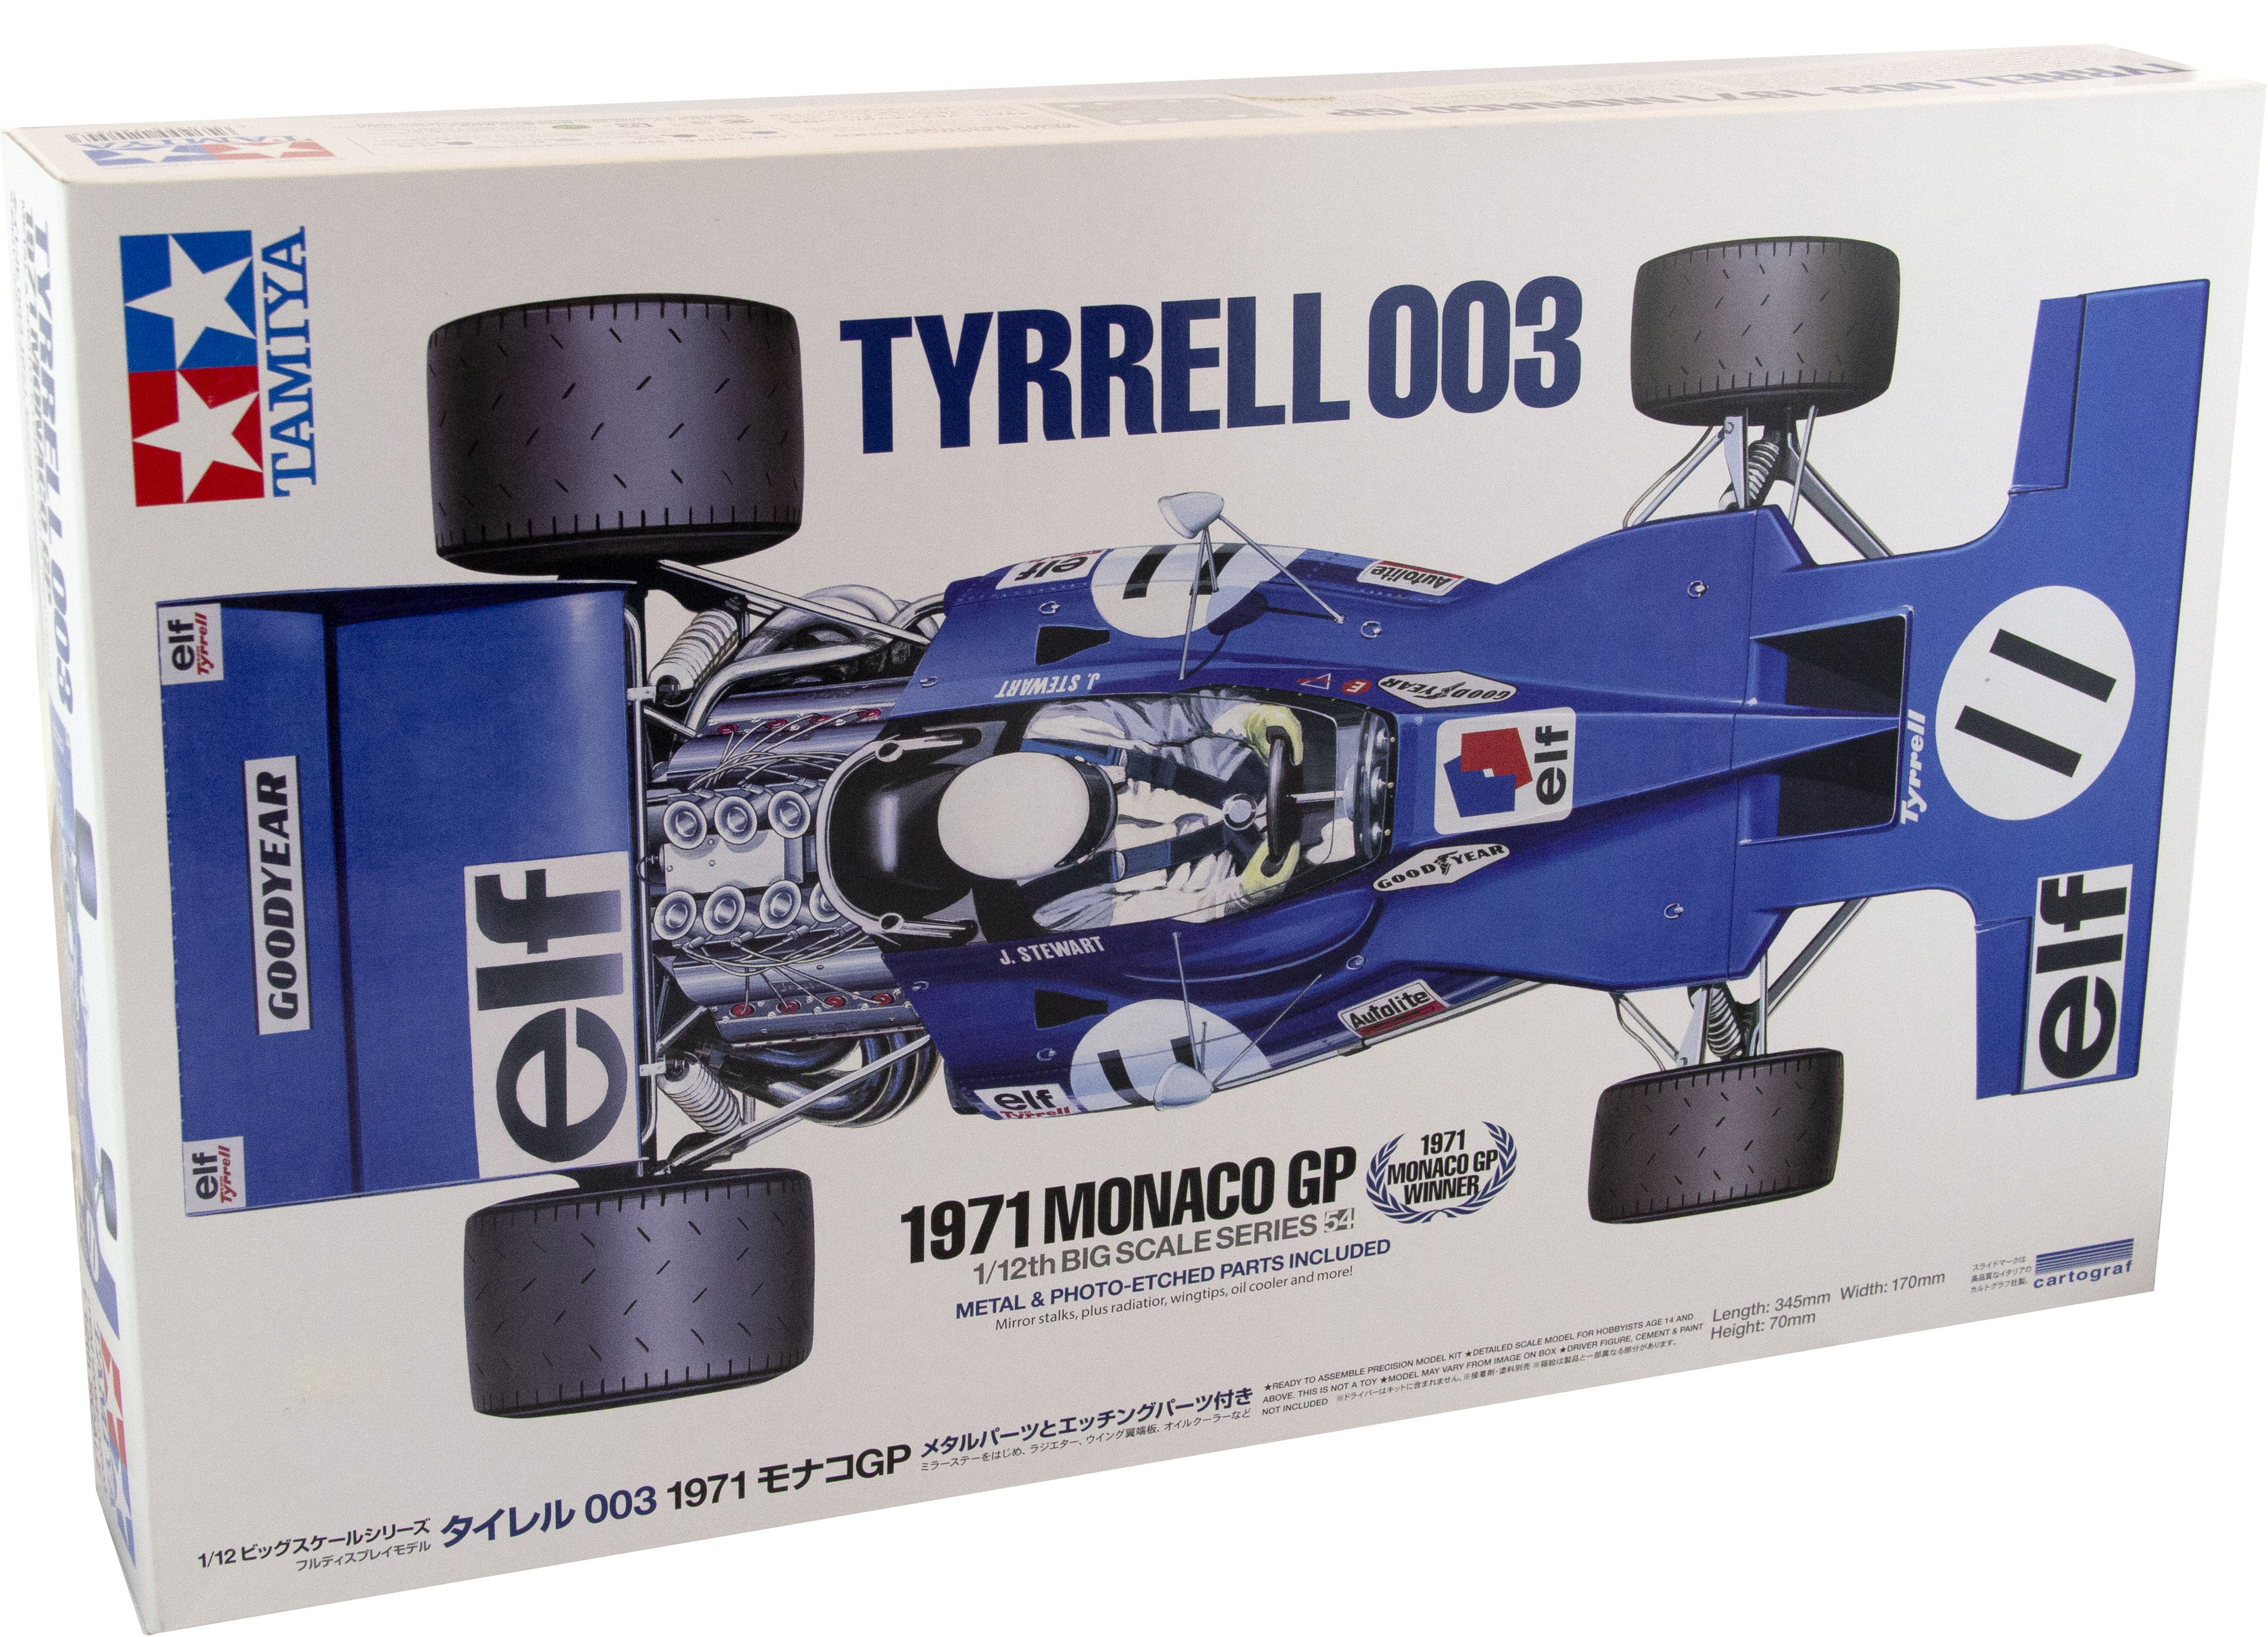 Kit Tyrrell 003 1971 Monaco Gp 1/12